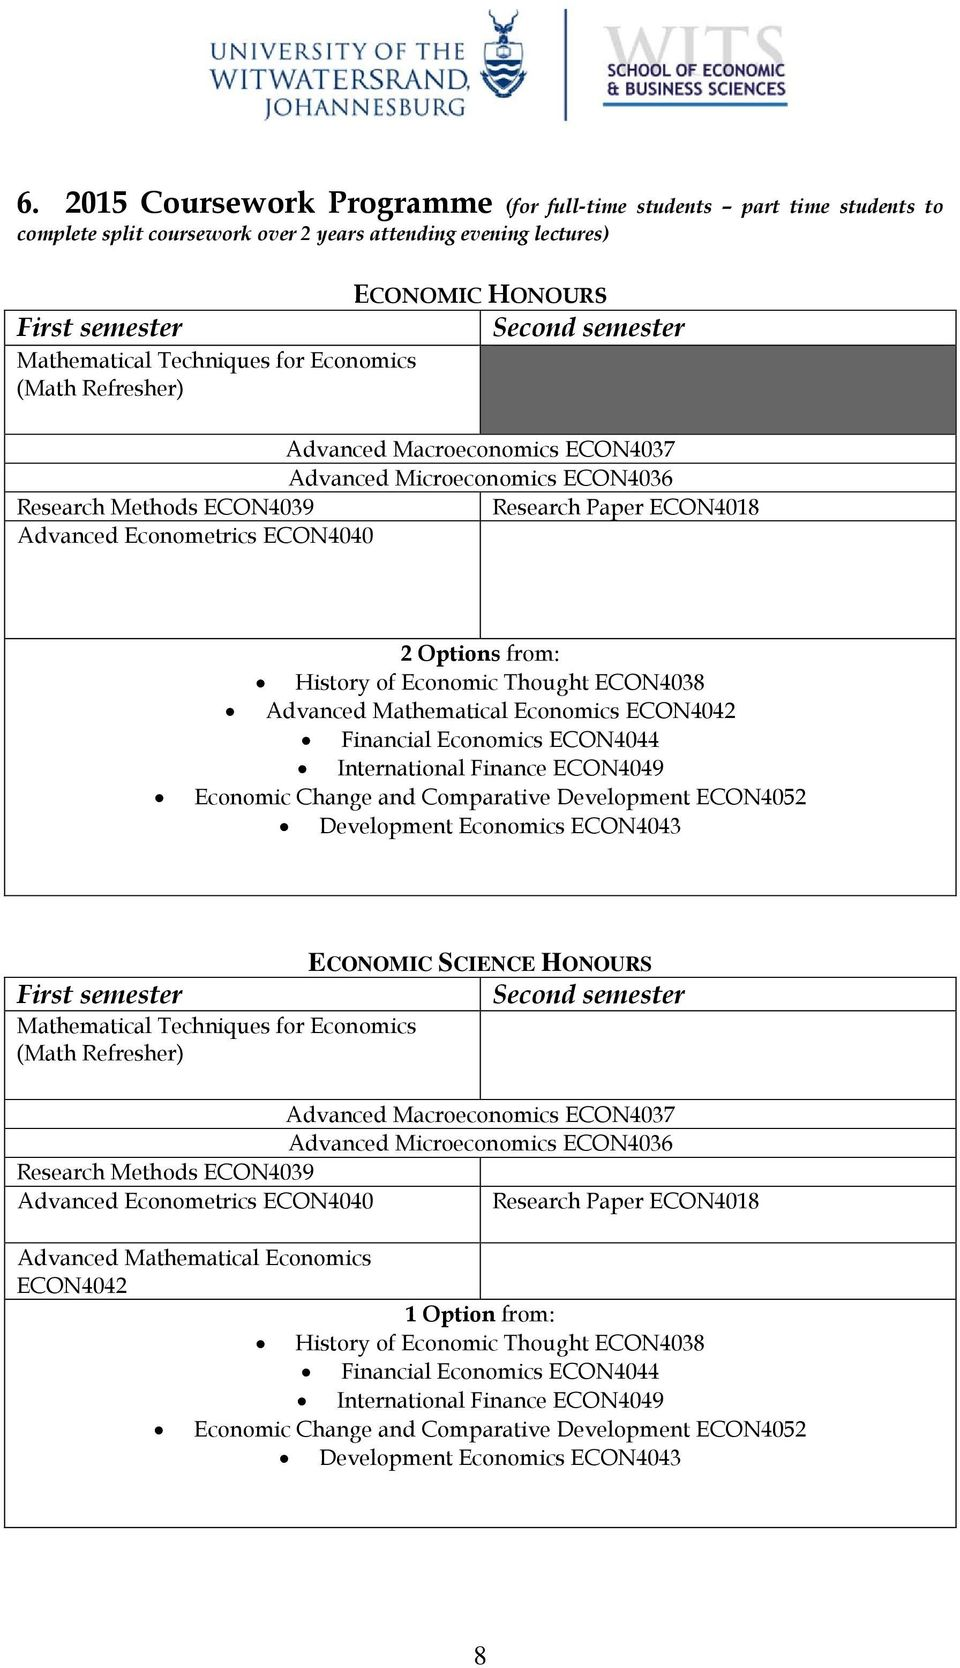 econometrics coursework Contact information, map and directions, contact form, opening hours, services, ratings, photos, videos and announcements from financial econometrics coursework.